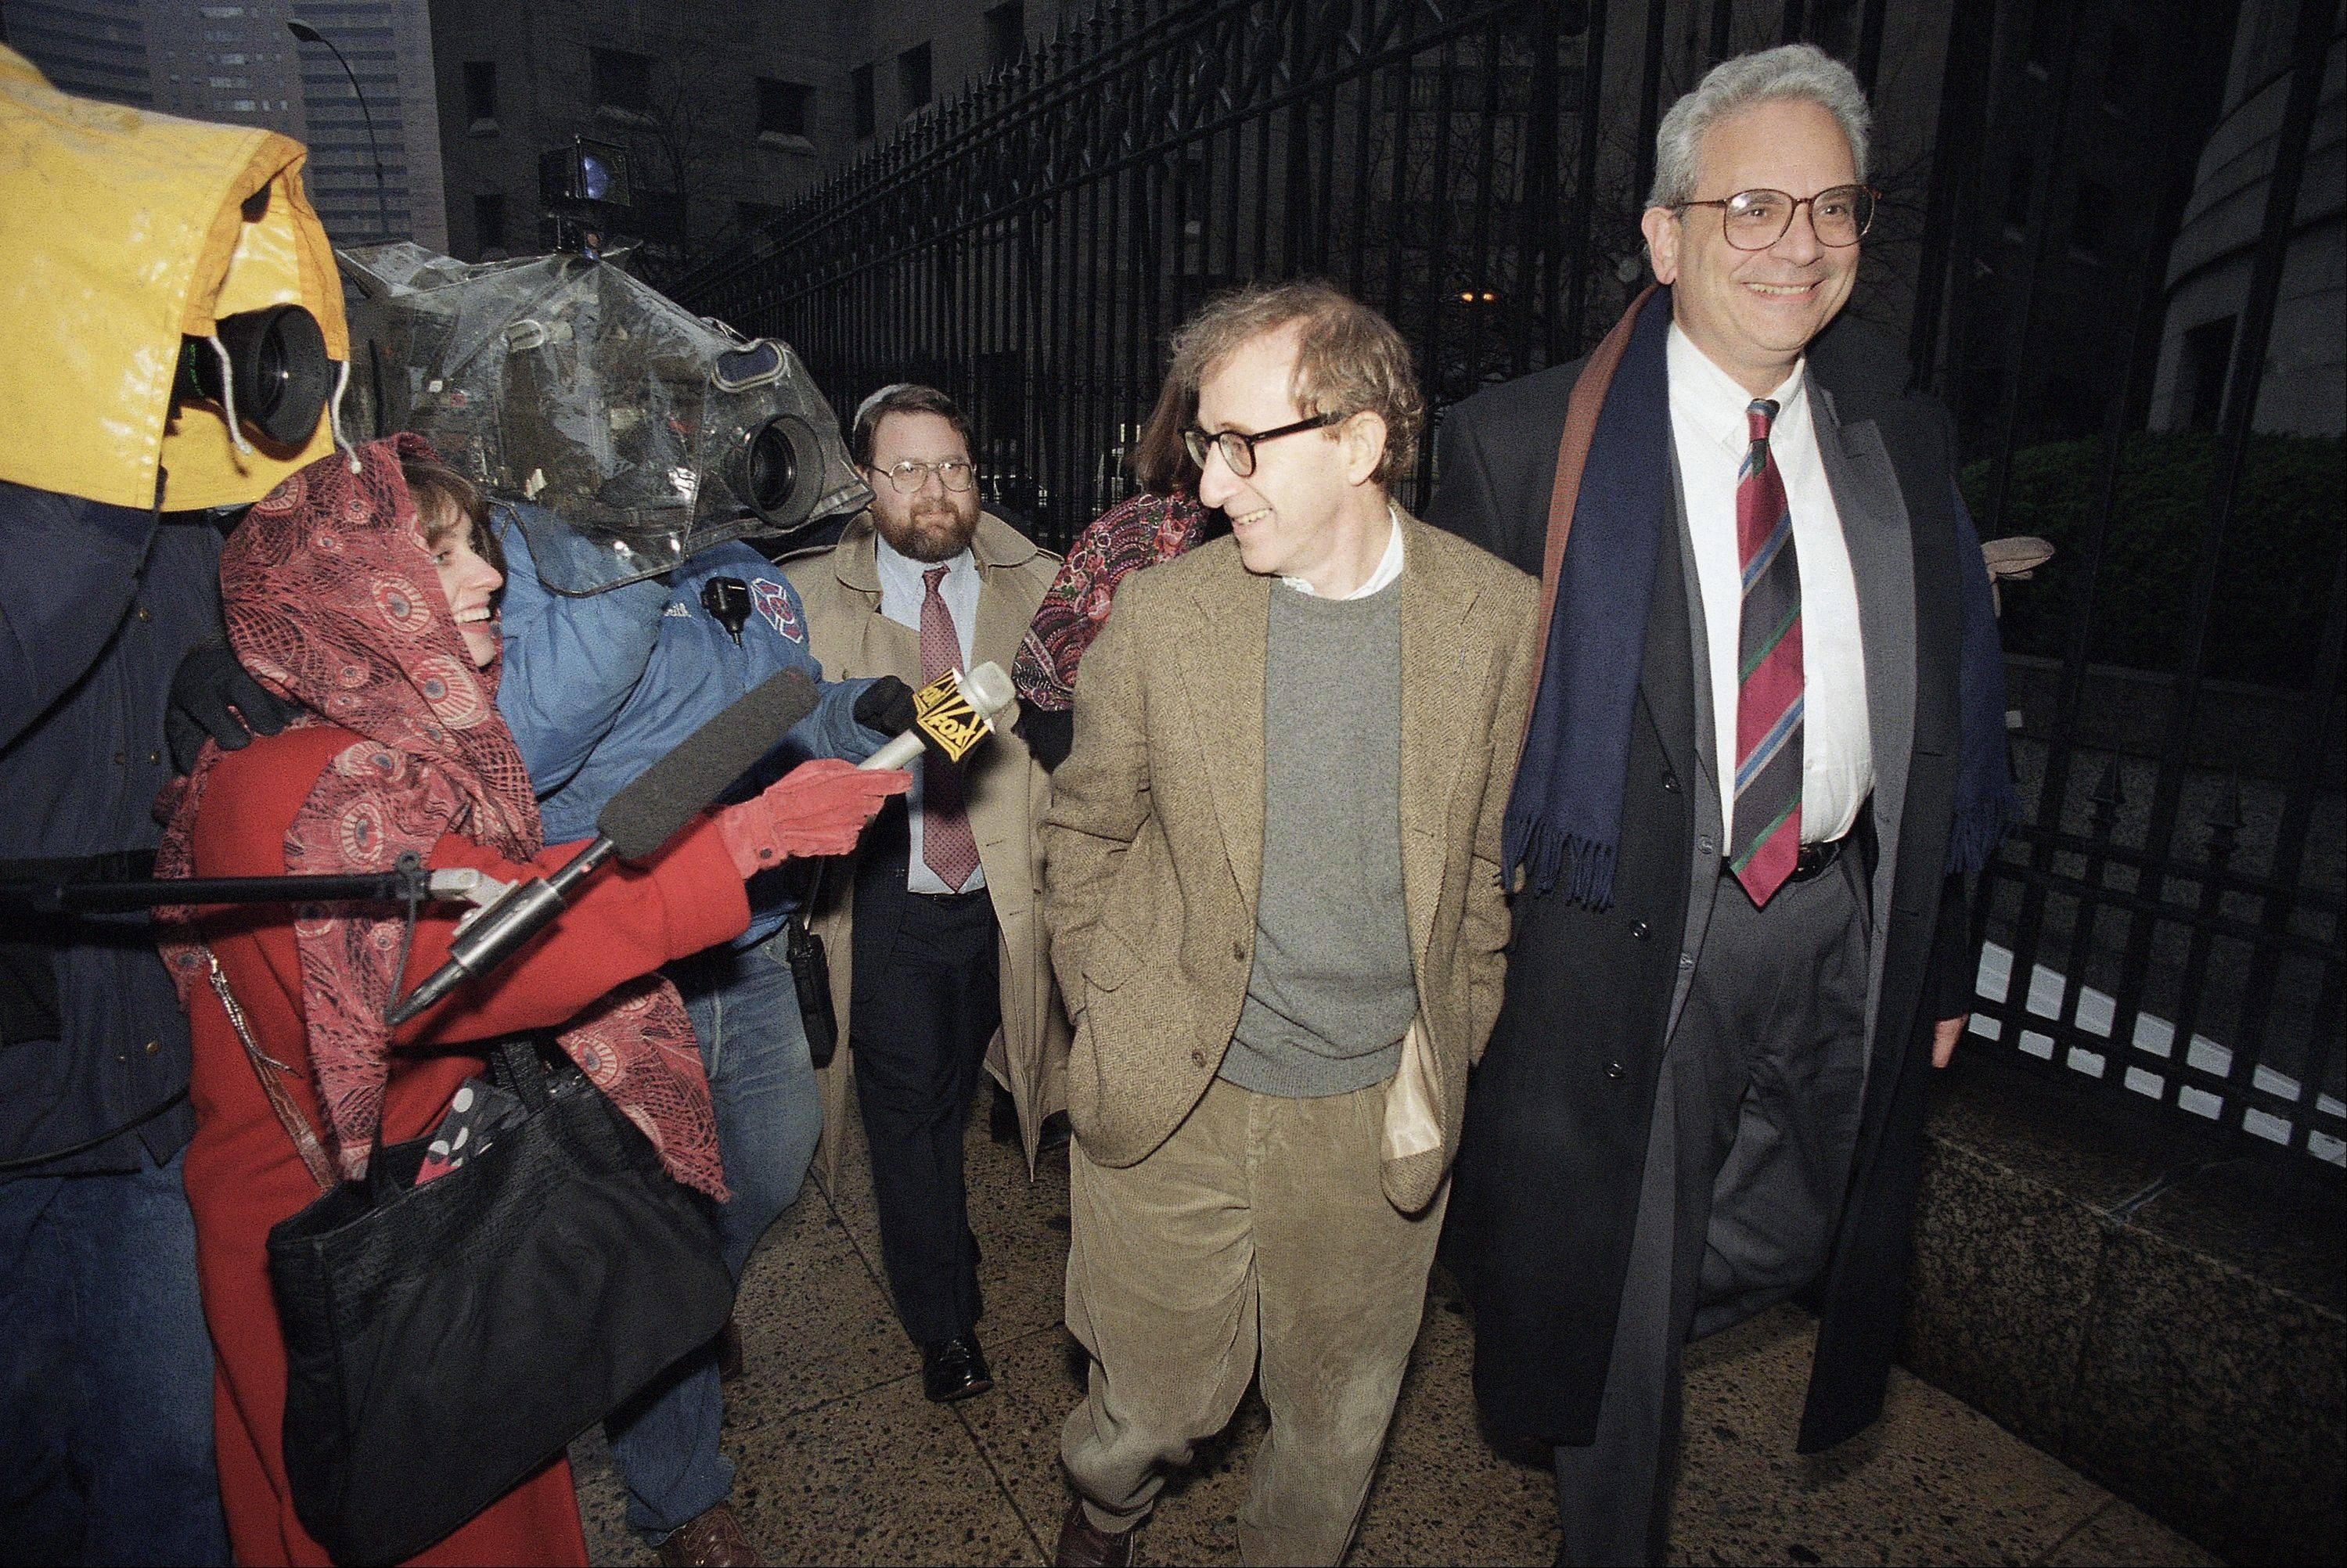 Director Woody Allen arrives at State Supreme Court in Manhattan, N.Y., in 1993 for a hearing in which he requested more liberal visitation rights with his children during his ongoing dispute with ex-lover Mia Farrow. Dylan Farrow renewed molestation allegations against Allen, Saturday, Feb. 1, claiming the movie director sexually assaulted her when she was 7 after he and actress Mia Farrow adopted her.